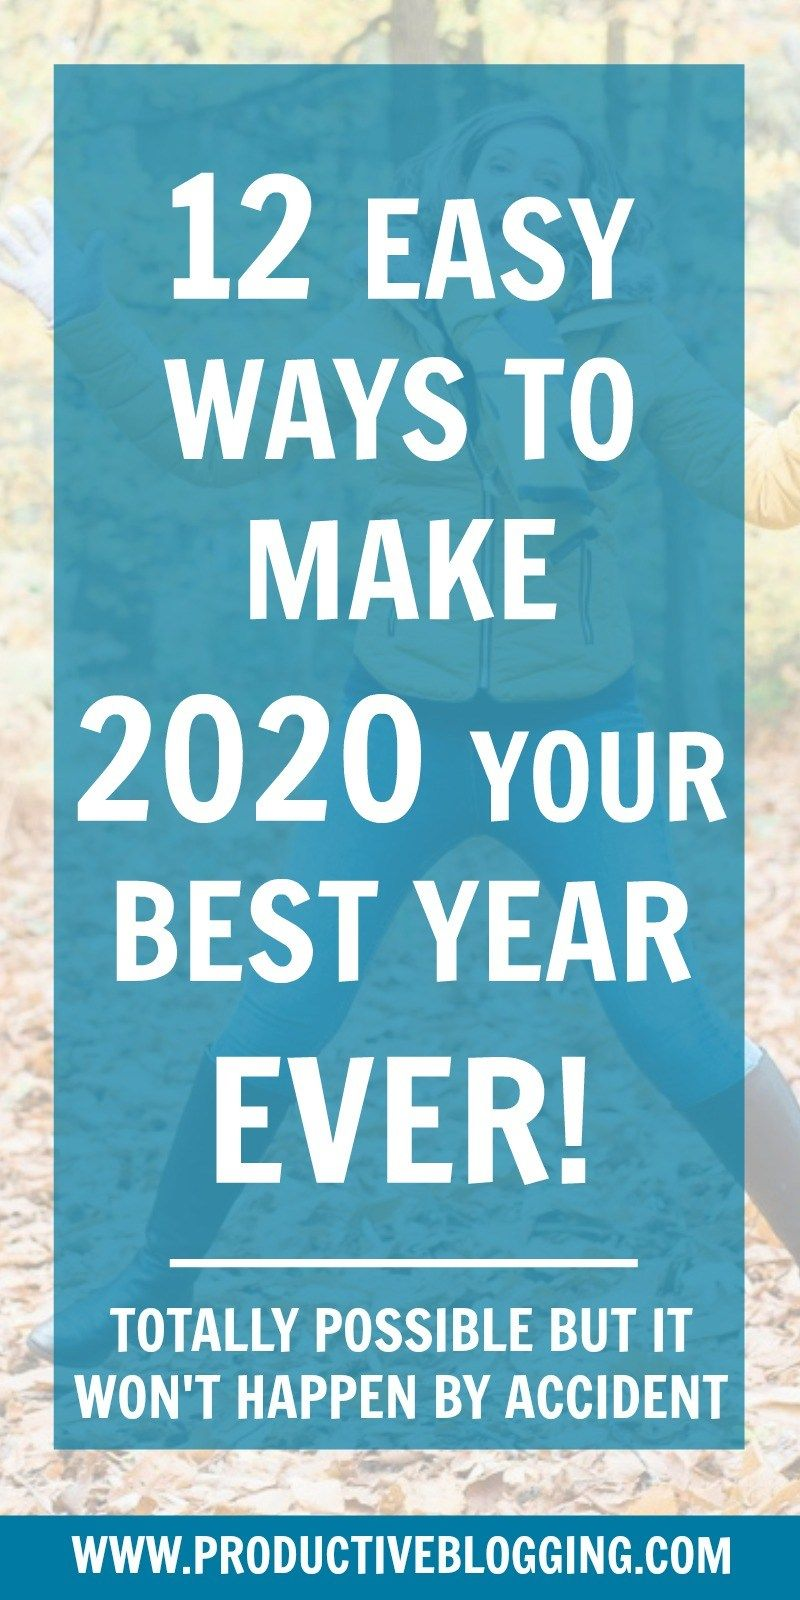 11 Easy Ways To Make 2020 Your Best Year Ever Time Management